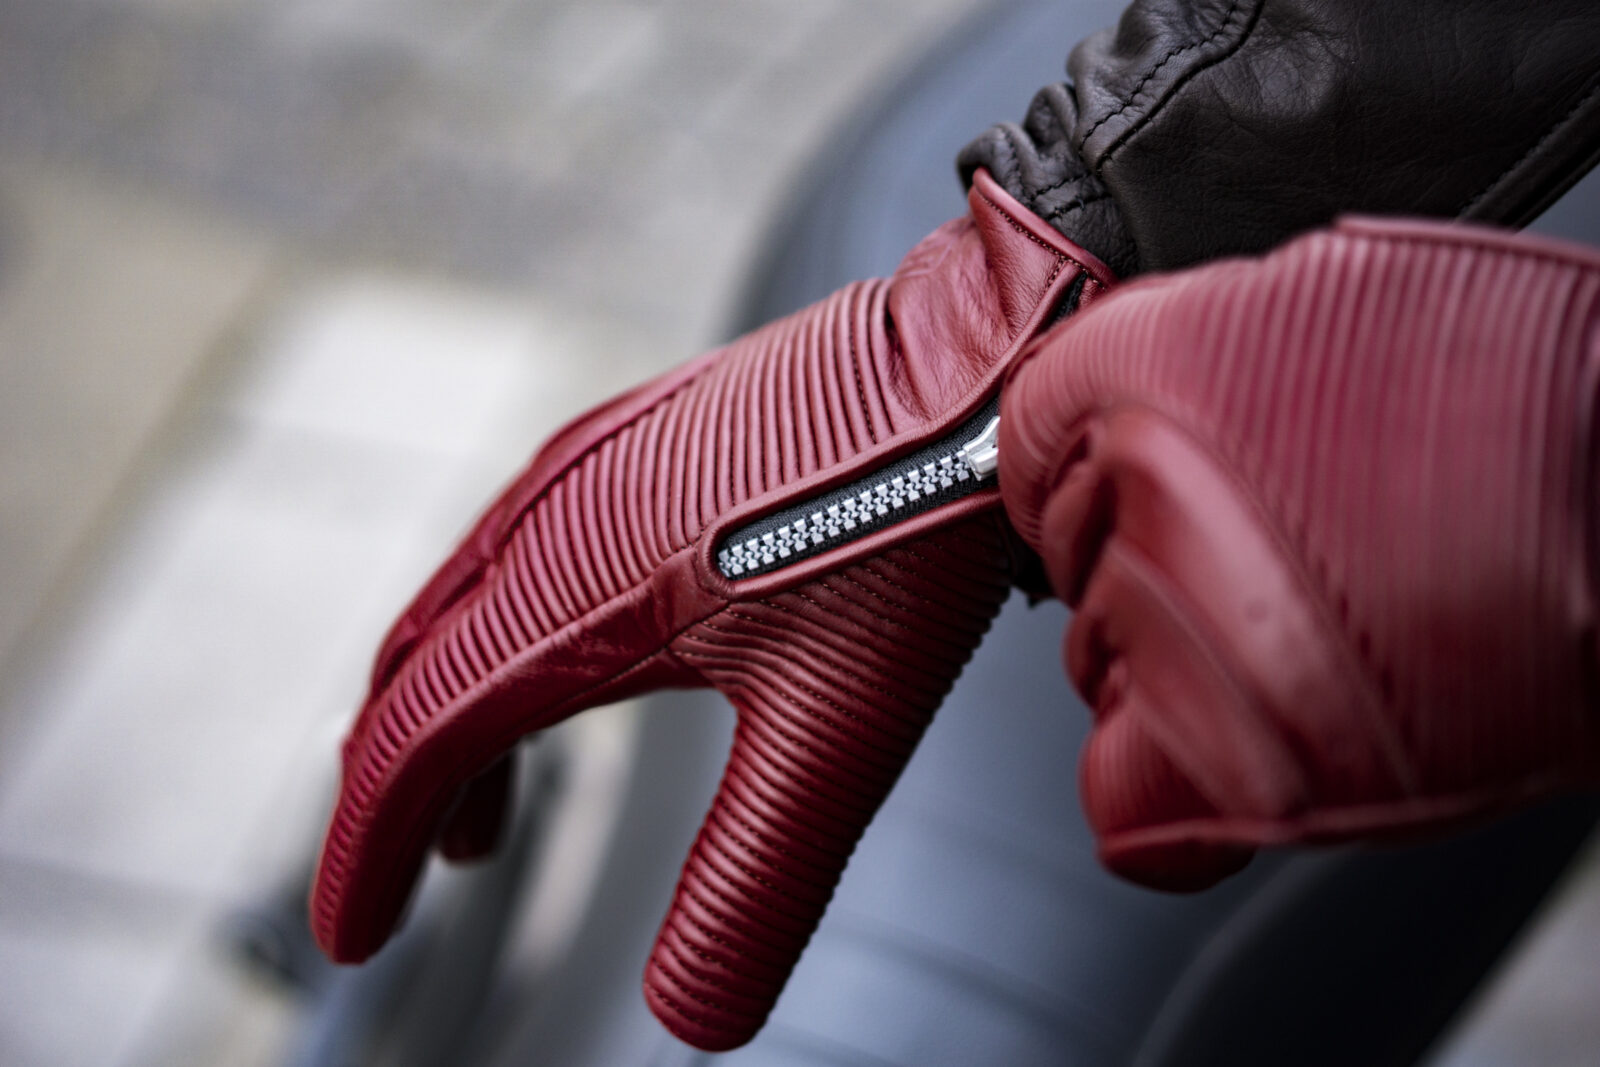 Sakura Motorcycle Gloves by 78 Motor Co. 1600x1067 - Sakura Motorcycle Gloves by 78 Motor Co.